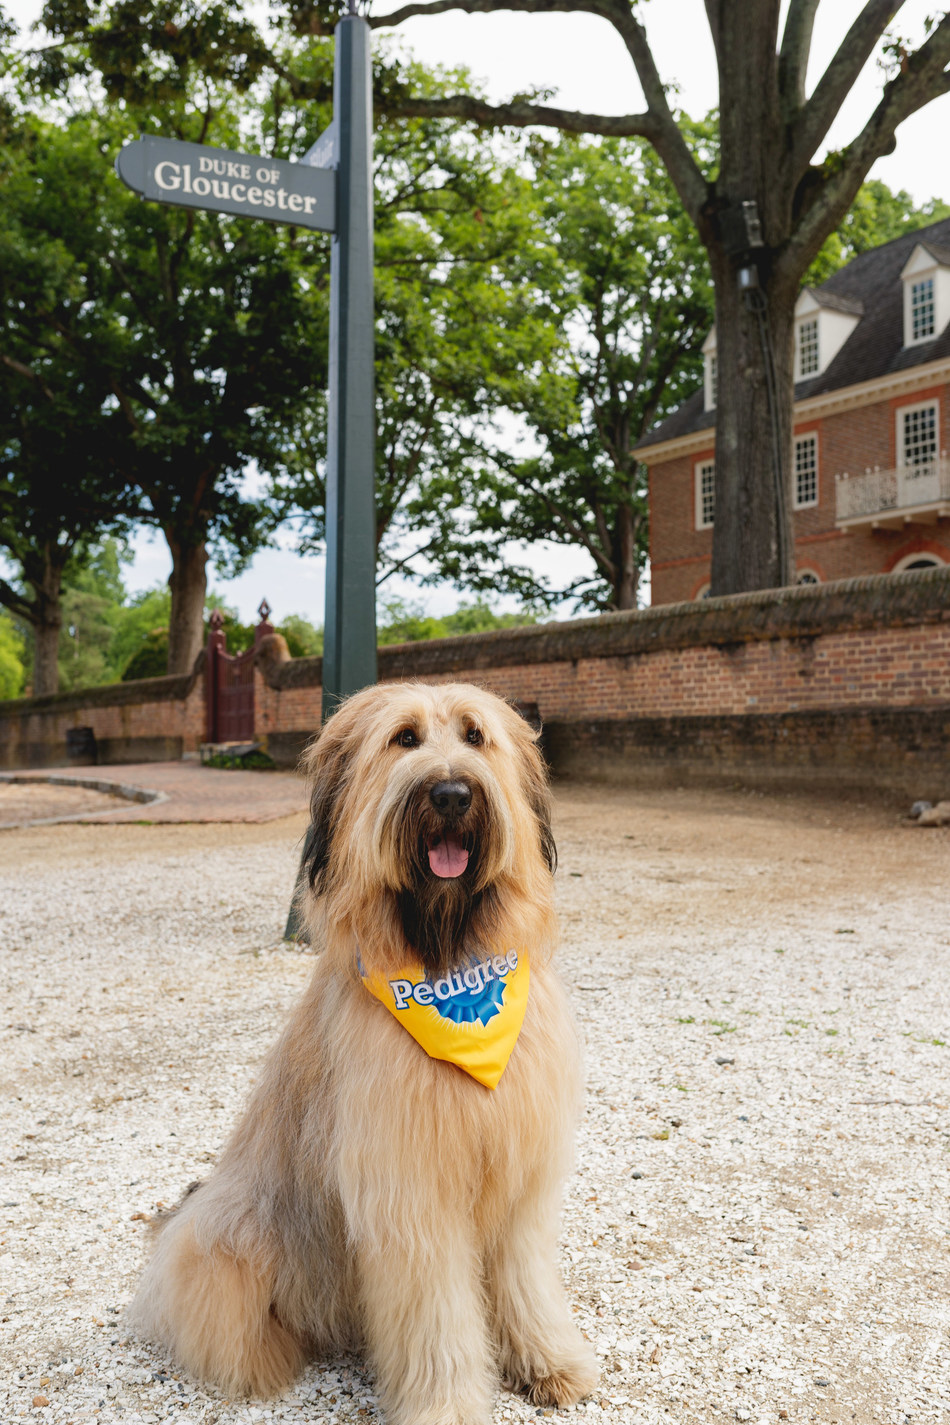 Colonial Williamsburg's mascot, Liberty the dog, celebrates the PEDIGREE(R) brand's FEED THE GOOD(TM) message.